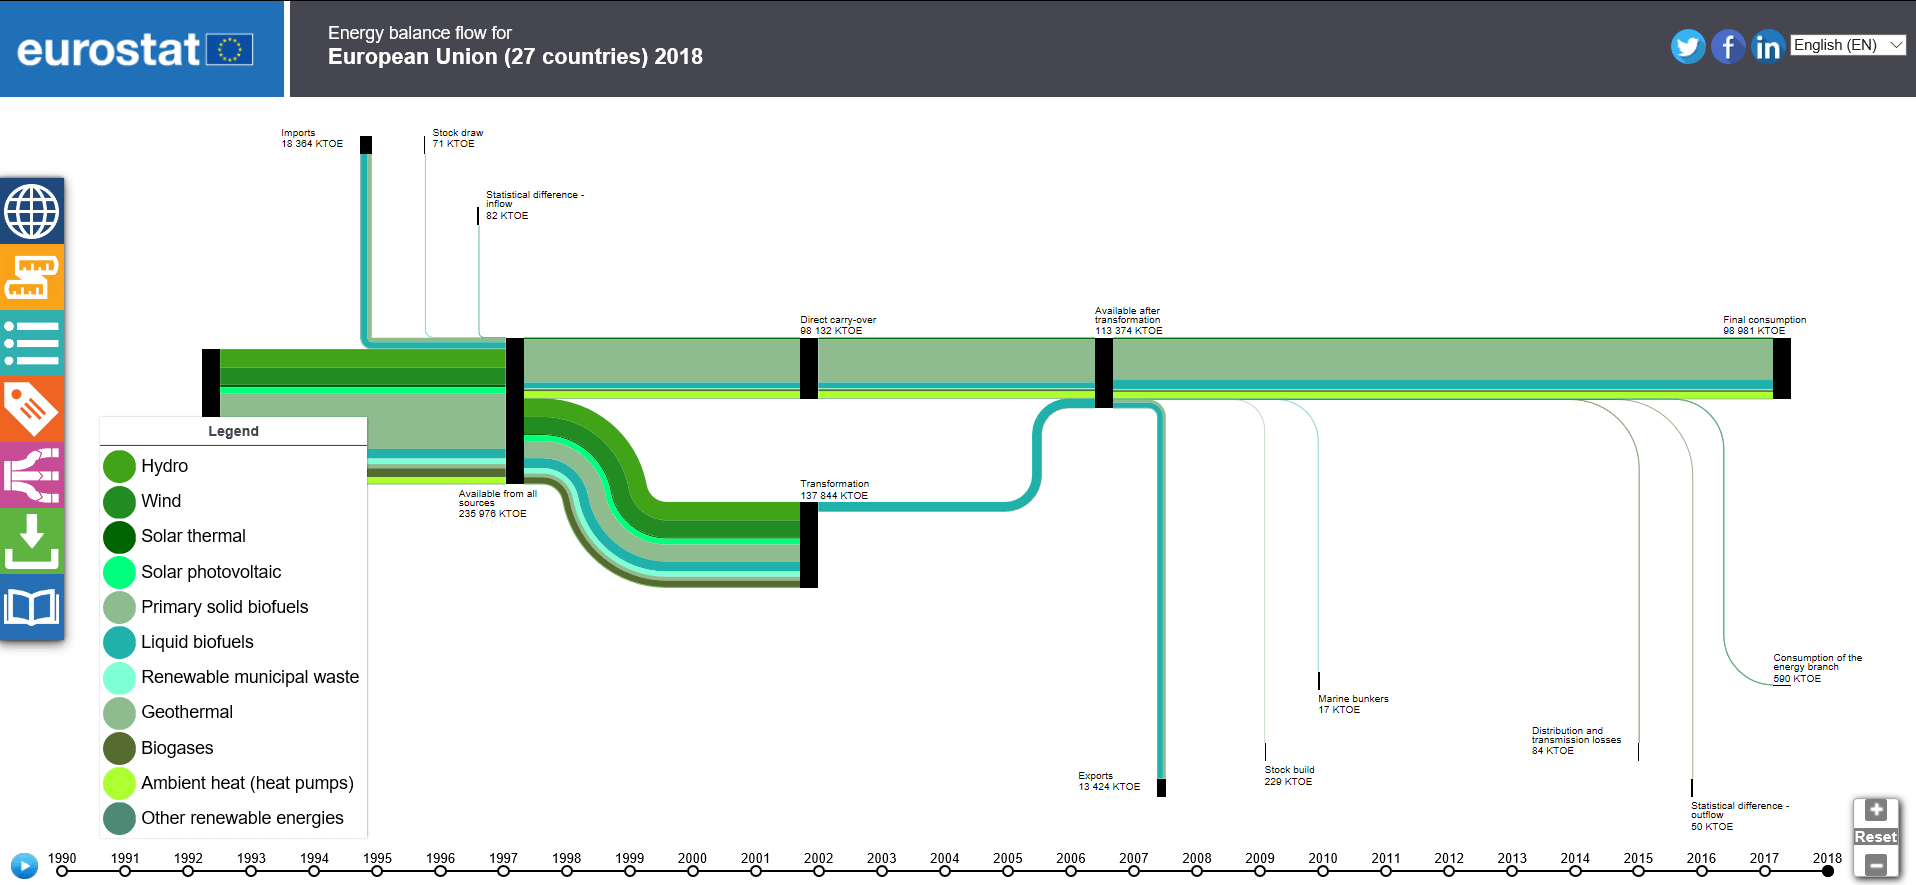 sankey diagram of wind nema l14 30 wiring diagrams for energy balance statistics explained figure 8 example the detailed view renewable energies family in source eurostat